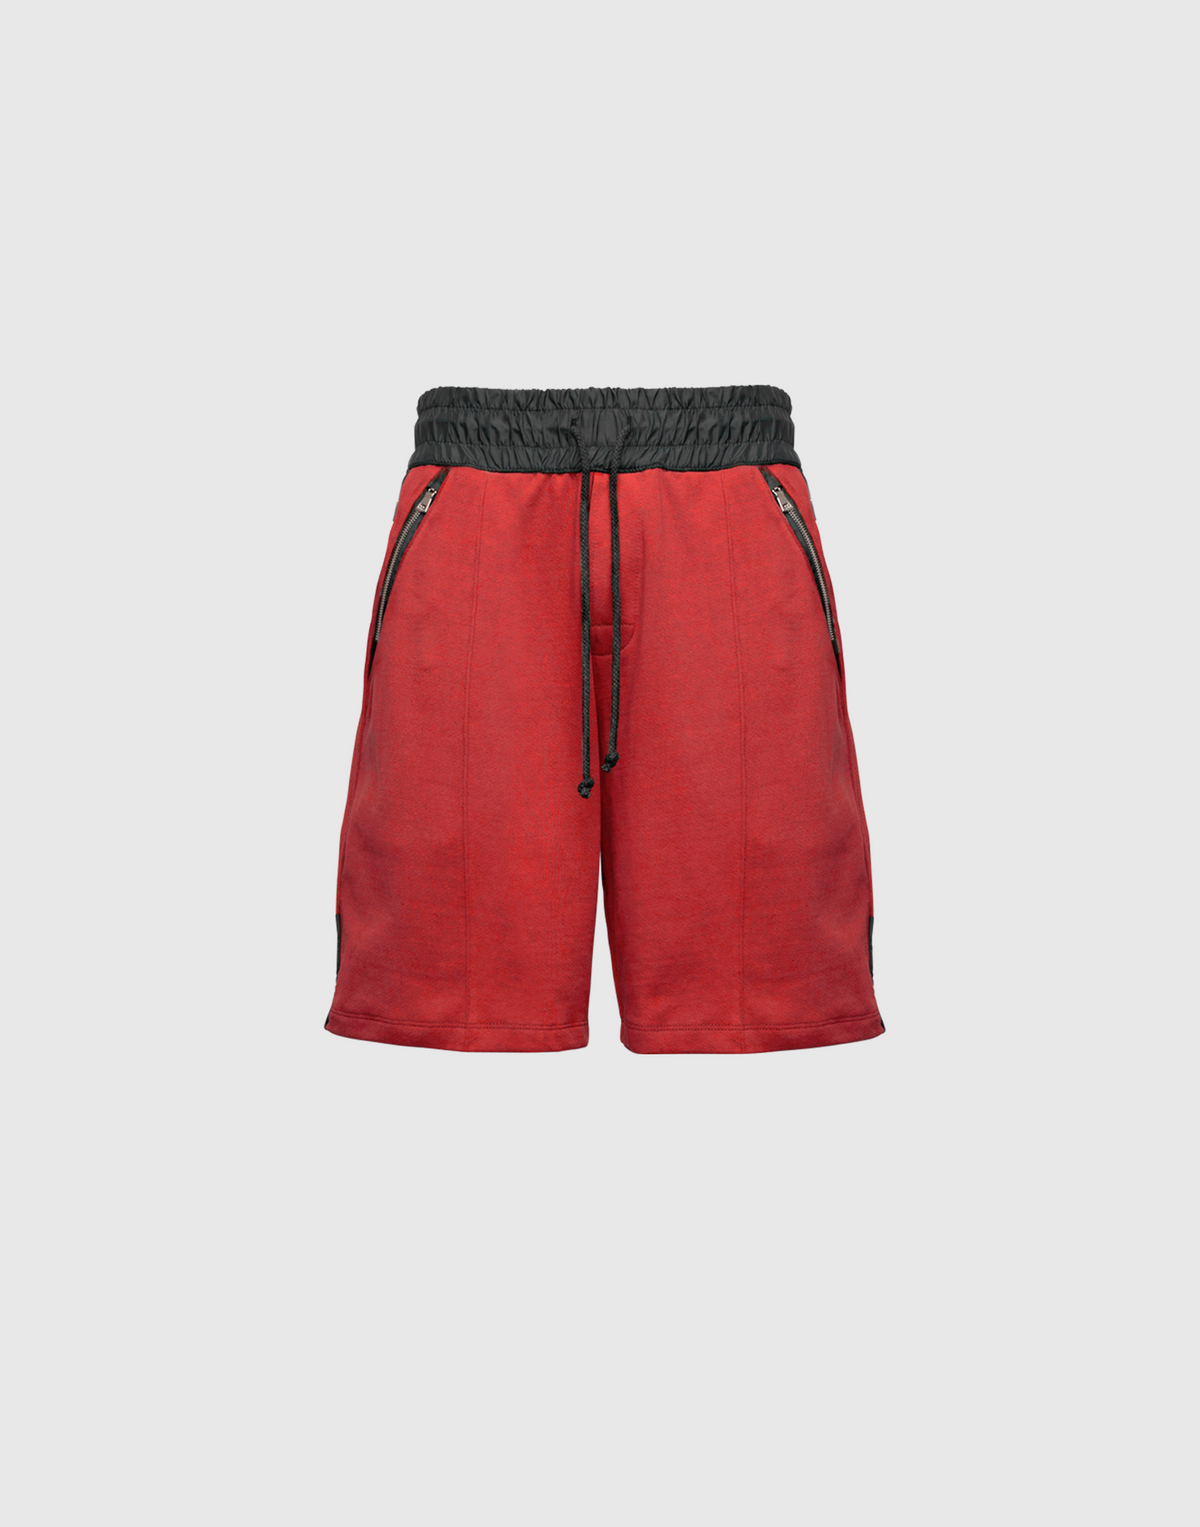 Mercer Shorts- RED